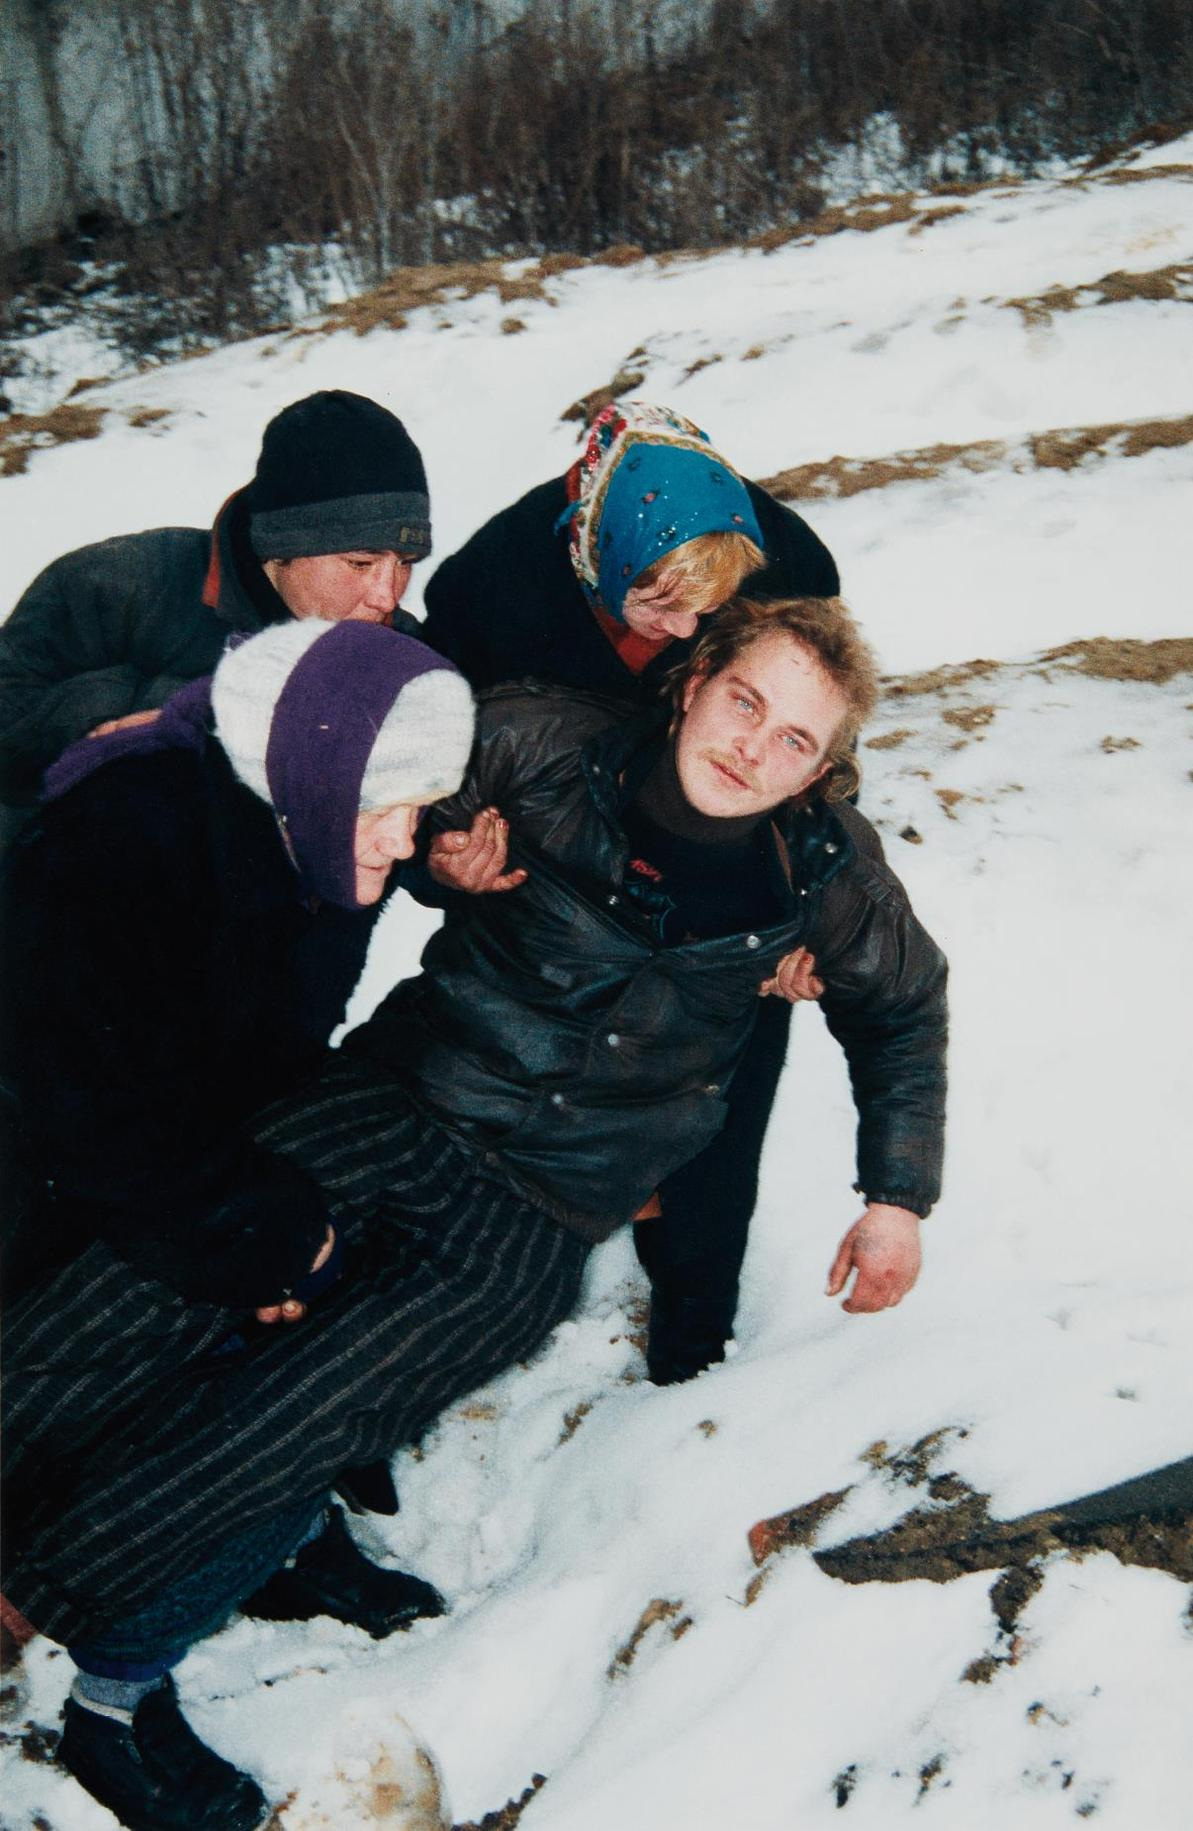 Boris Mikhailov - Untitled From Case History-1998